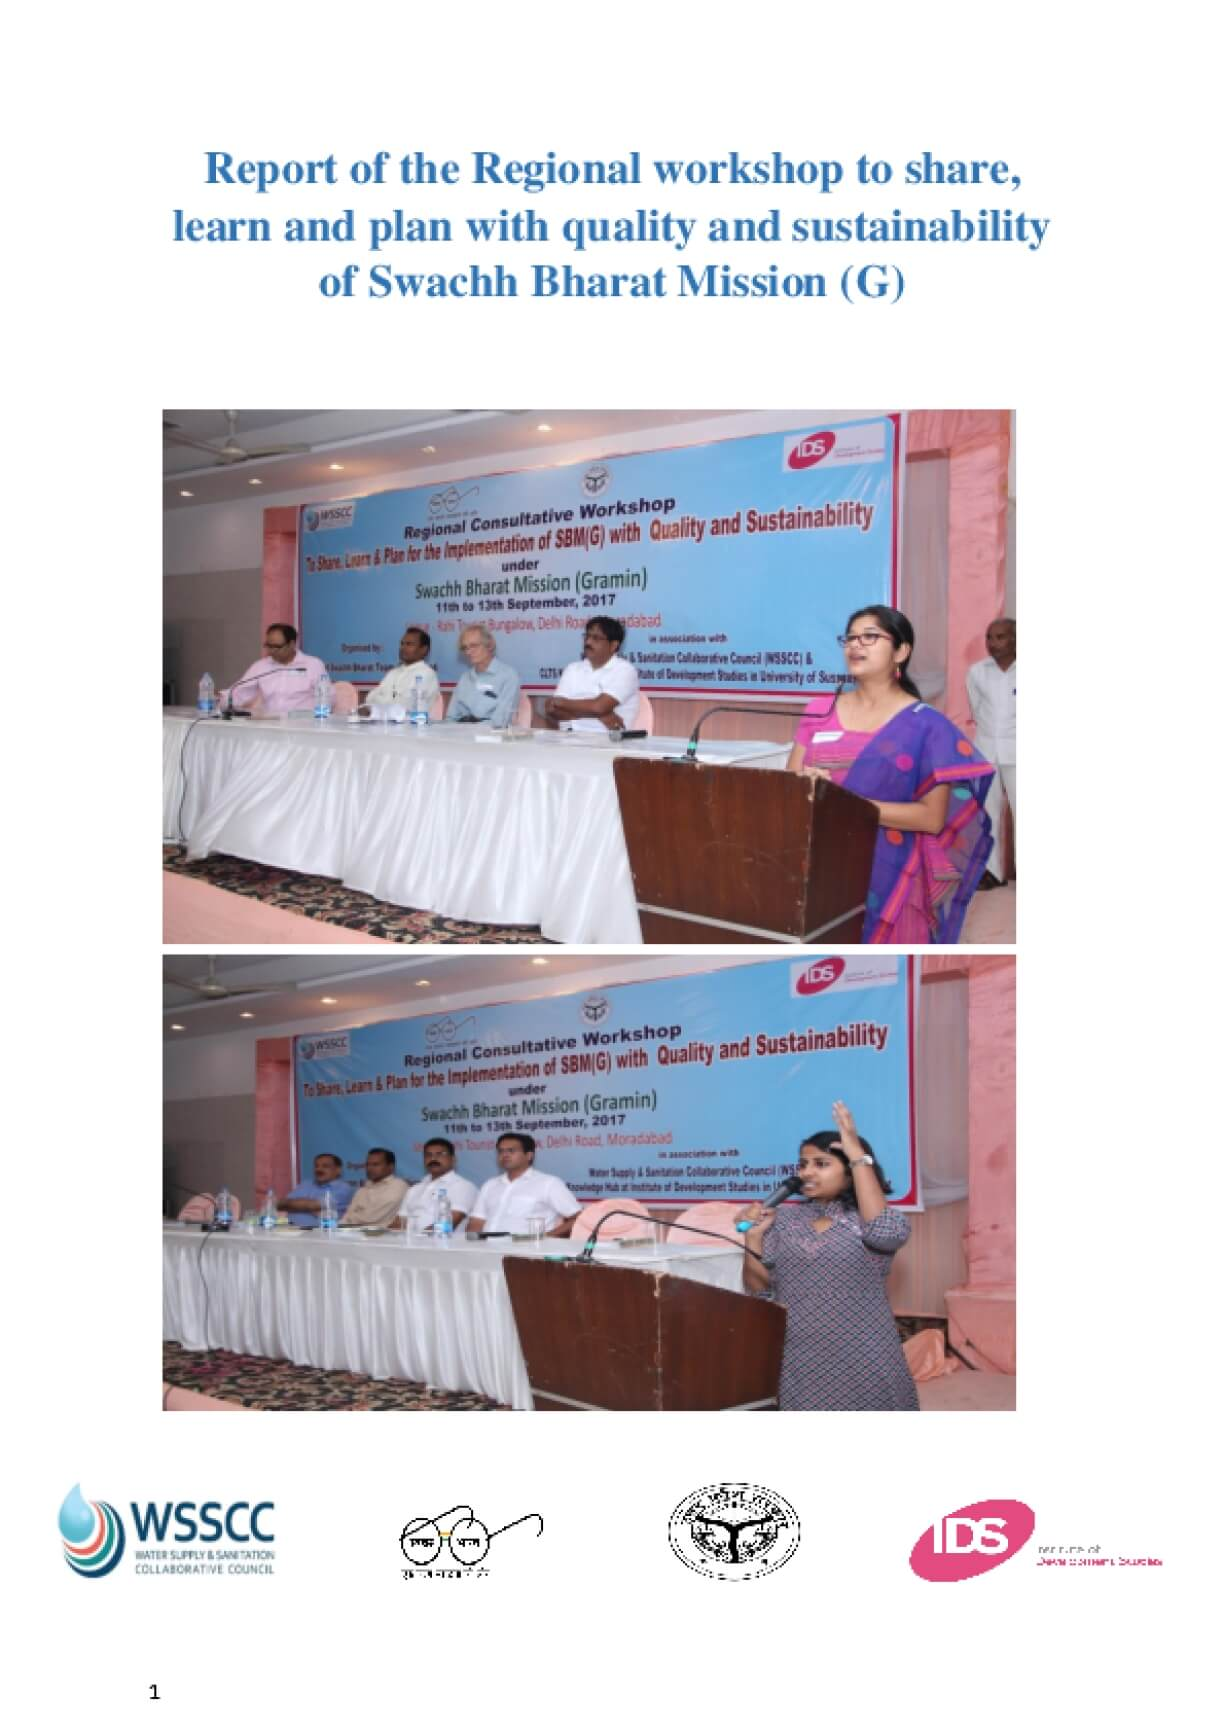 Report of the Regional Workshop to Share, Learn and Plan With Quality and Sustainability of Swachh Bharat Mission